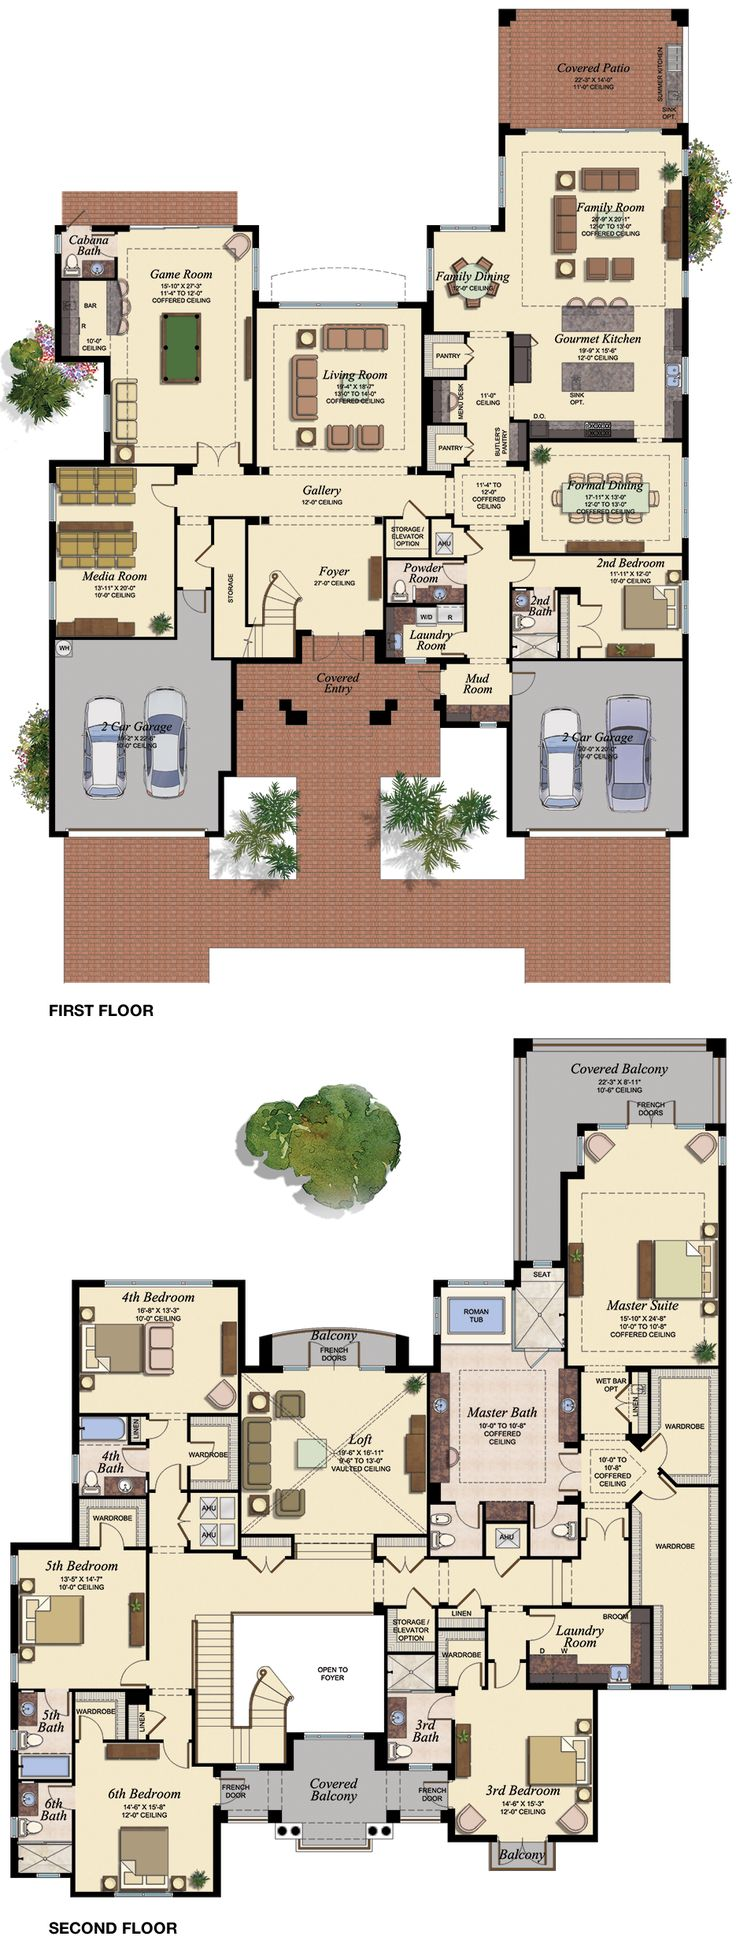 17 best ideas about dream house plans on pinterest for Dream house blueprints